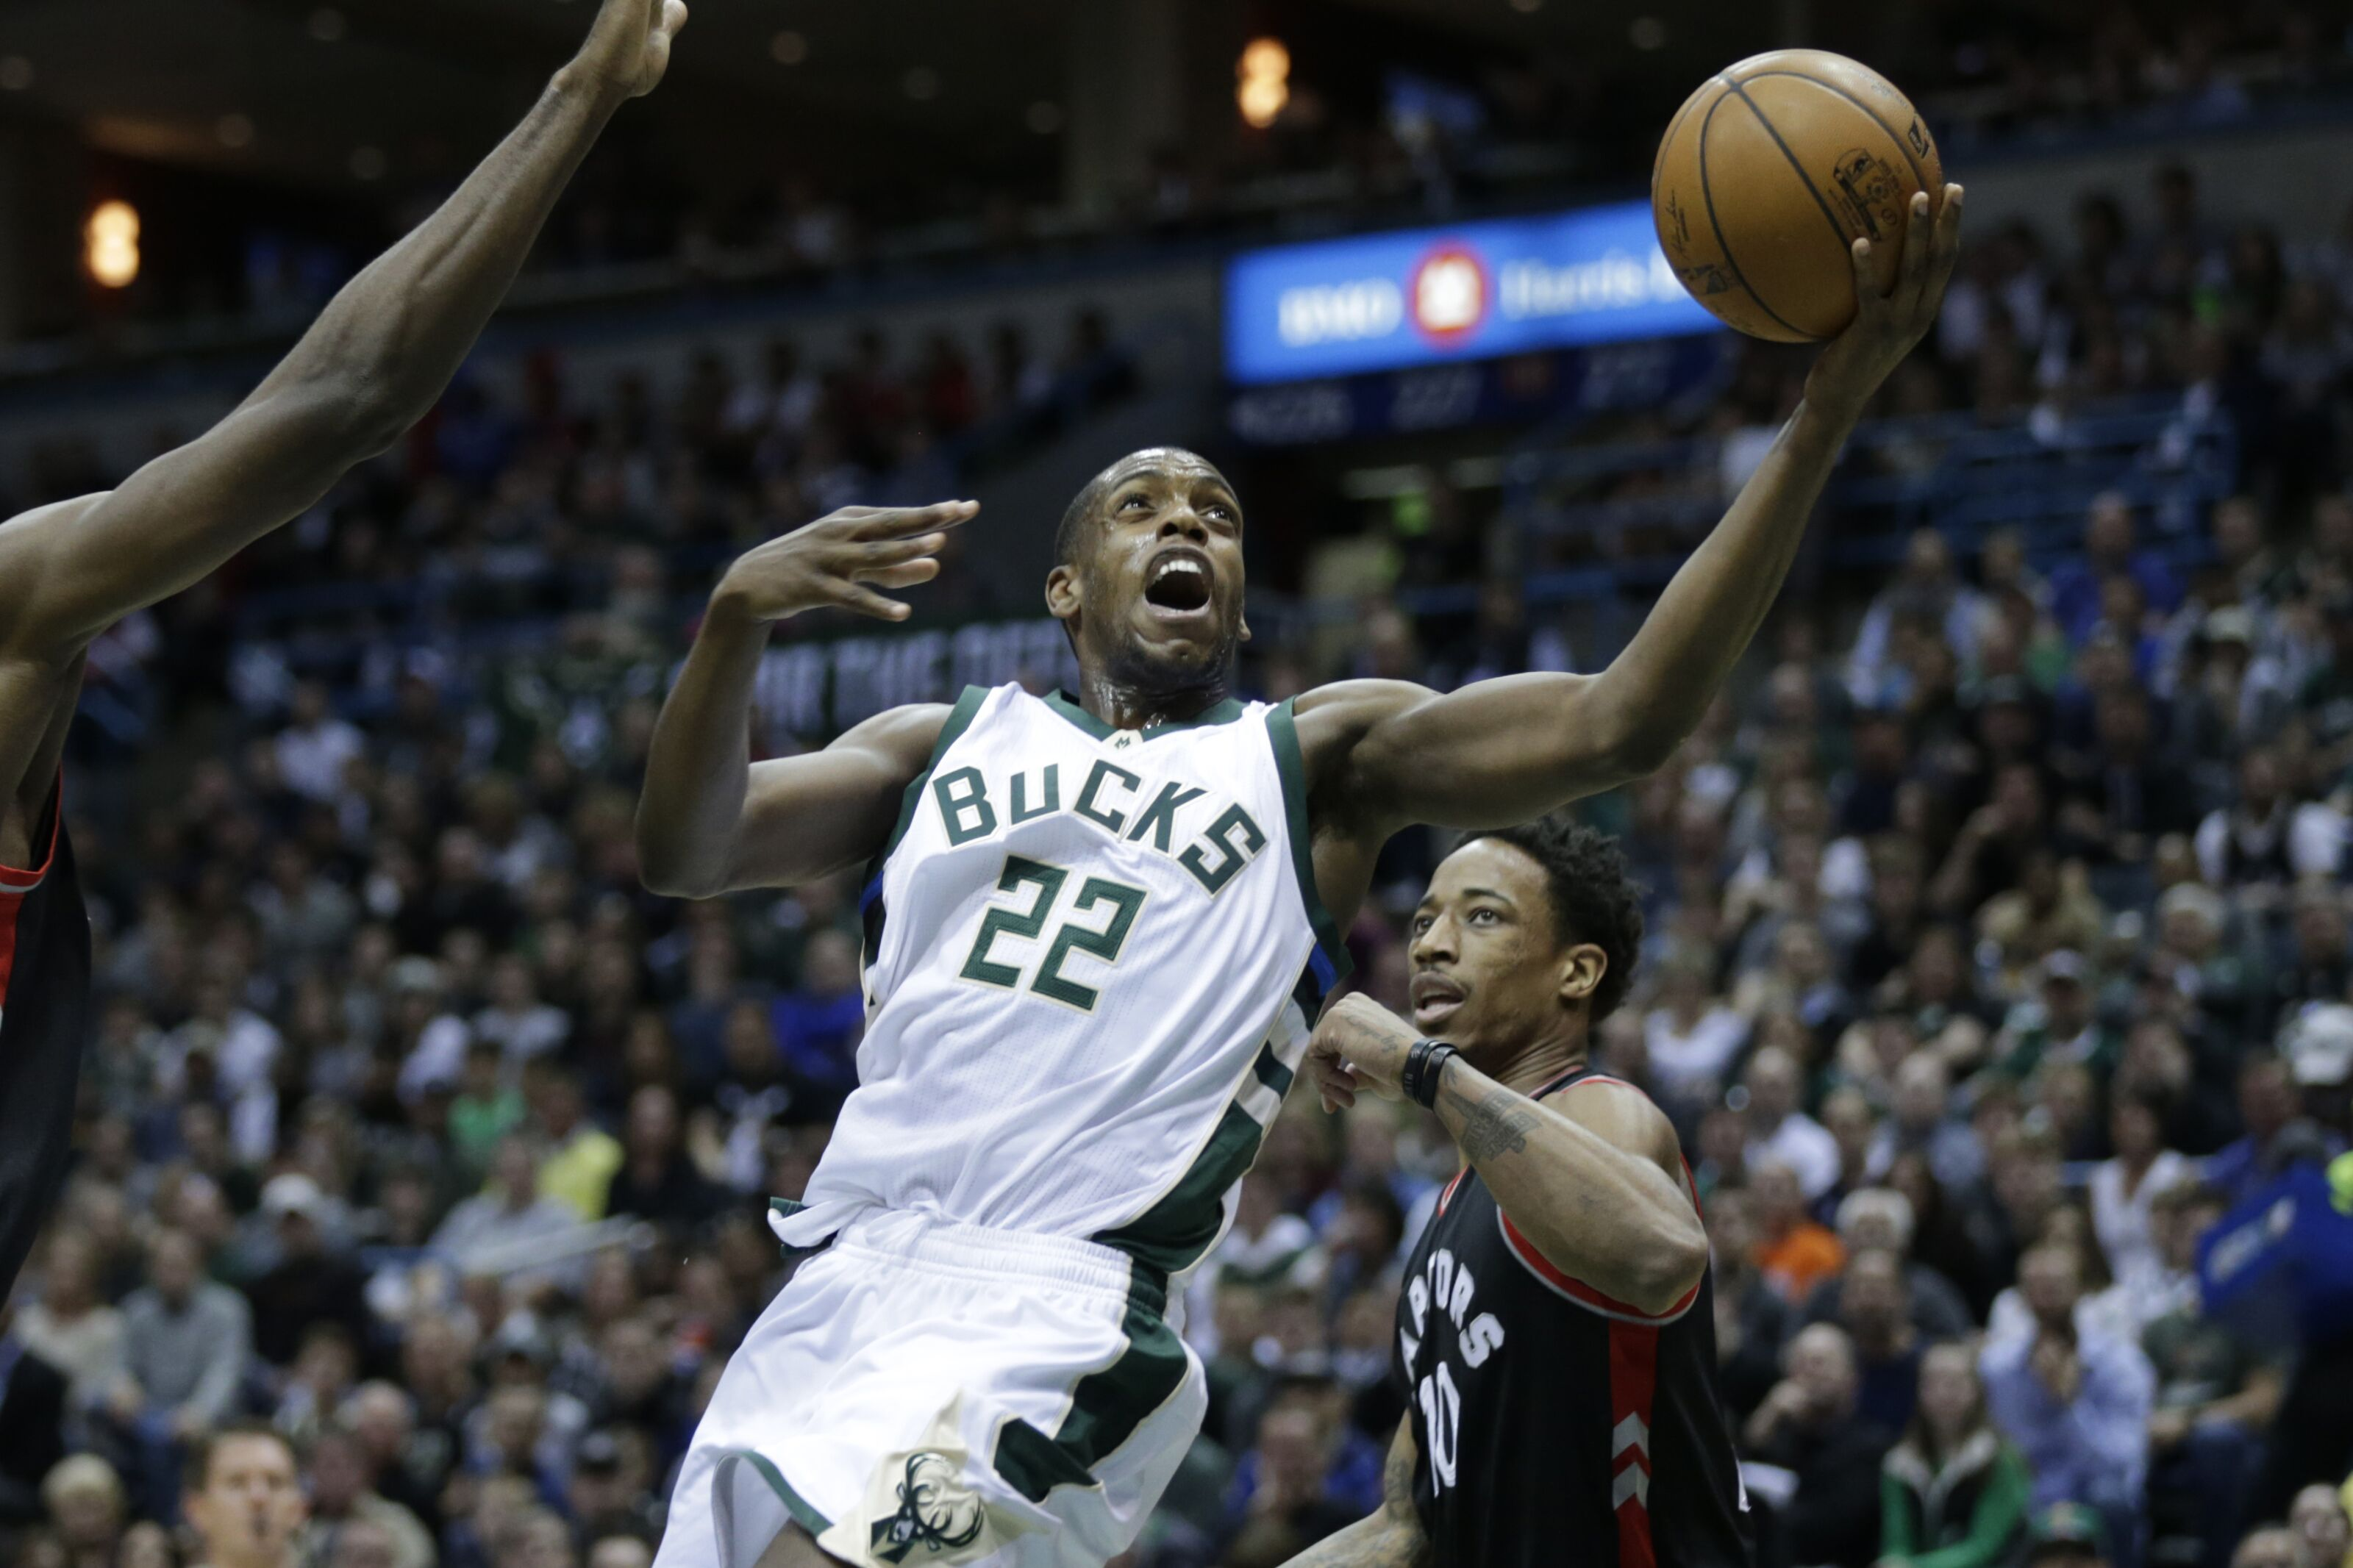 MILWAUKEE, WI - APRIL 22: Khris Middleton #22 of the Milwaukee Bucks drives to the hoop during the first half against the Toronto Raptors of Game Four of the Eastern Conference Quarterfinals during the 2017 NBA Playoffs at the BMO Harris Bradley Center on April 22, 2017 in Milwaukee, Wisconsin. NOTE TO USER: User expressly acknowledges and agrees that, by downloading and or using the photograph, User is consenting to the terms and conditions of the Getty Images License Agreement. (Photo by Mike McGinnis/Getty Images)